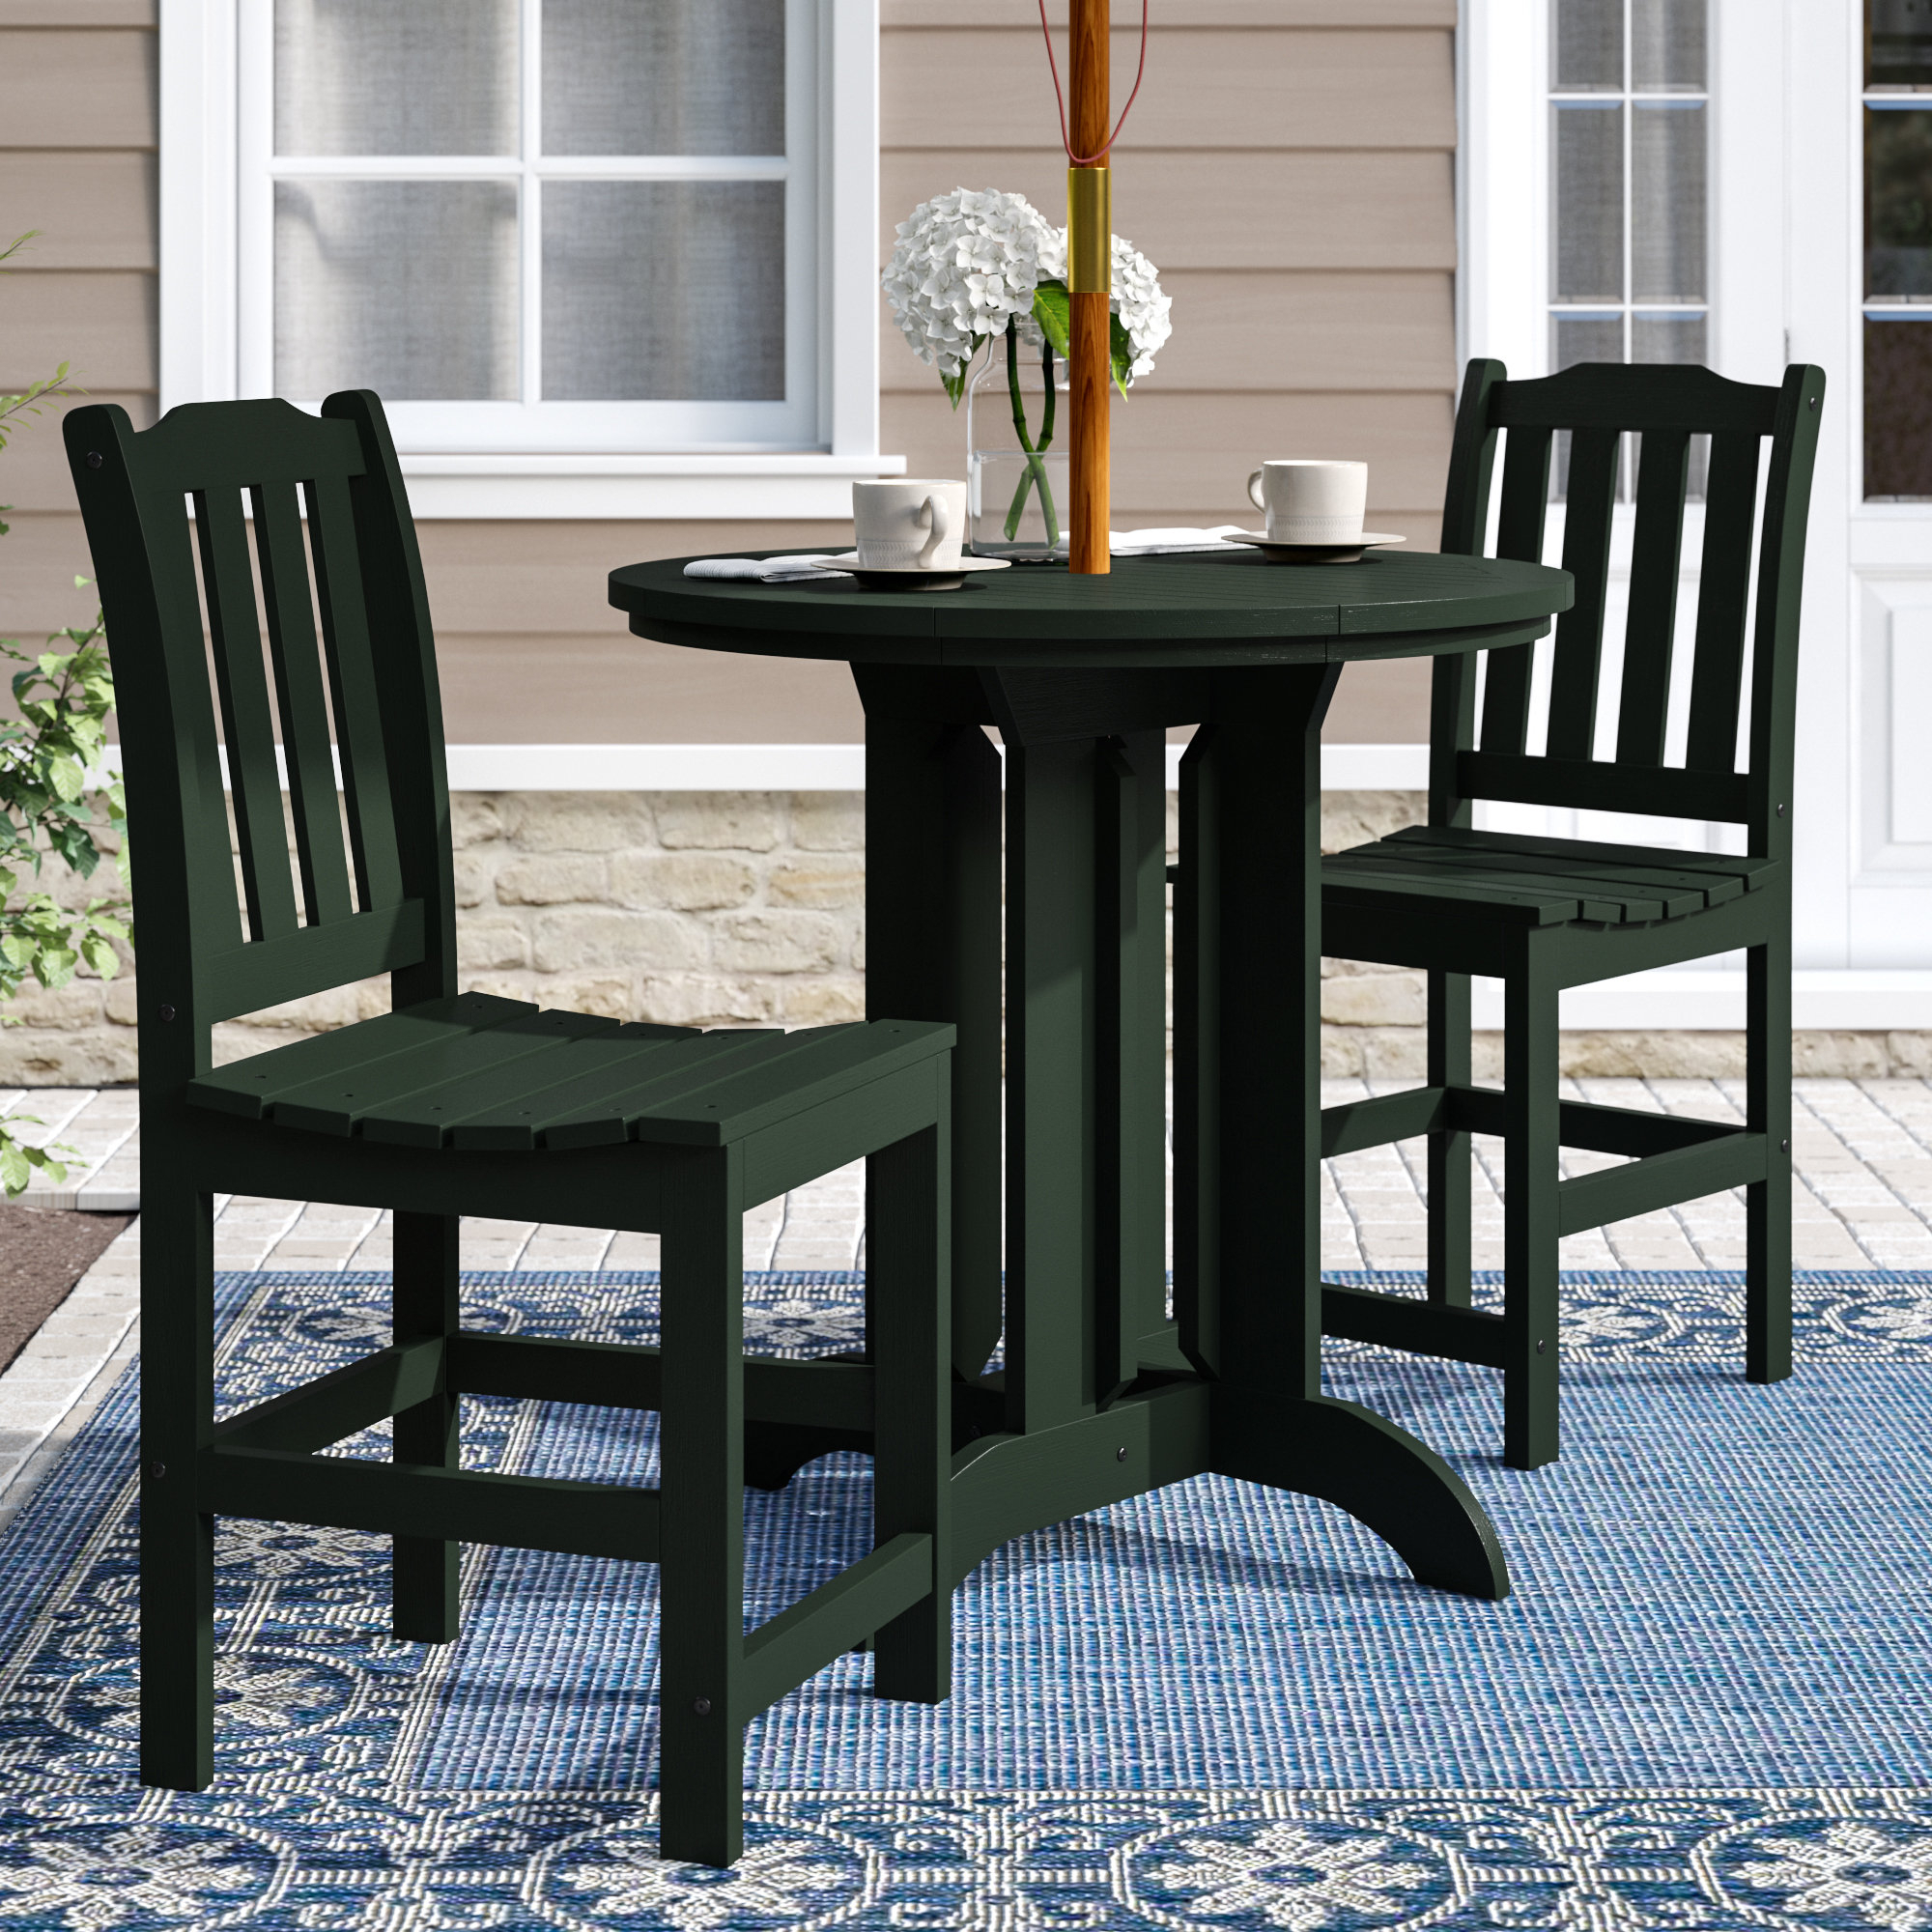 Regan 3 Piece Counter Height Dining Set Inside Most Recently Released Anette 3 Piece Counter Height Dining Sets (View 2 of 20)